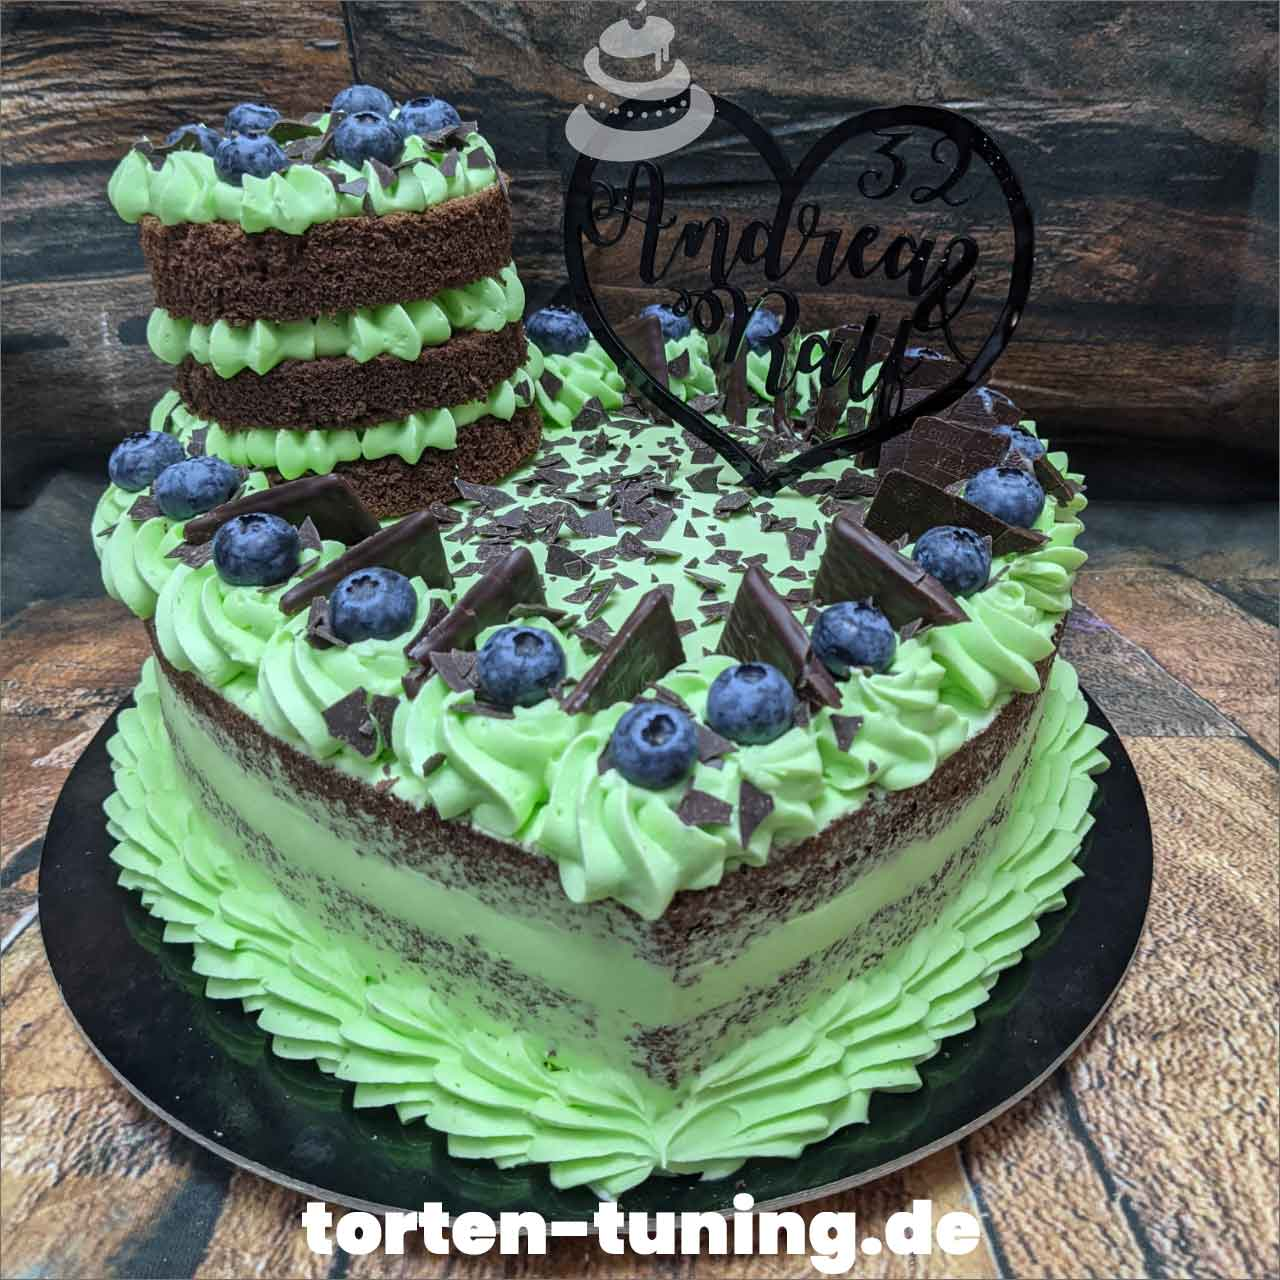 After Eight Herztorte Dripcake Obsttorte Geburtstagstorte Motivtorte Torte Tortendekoration Torte online bestellen Suhl Thüringen Torten Tuning Sahnetorte Tortenfiguren Cake Topper